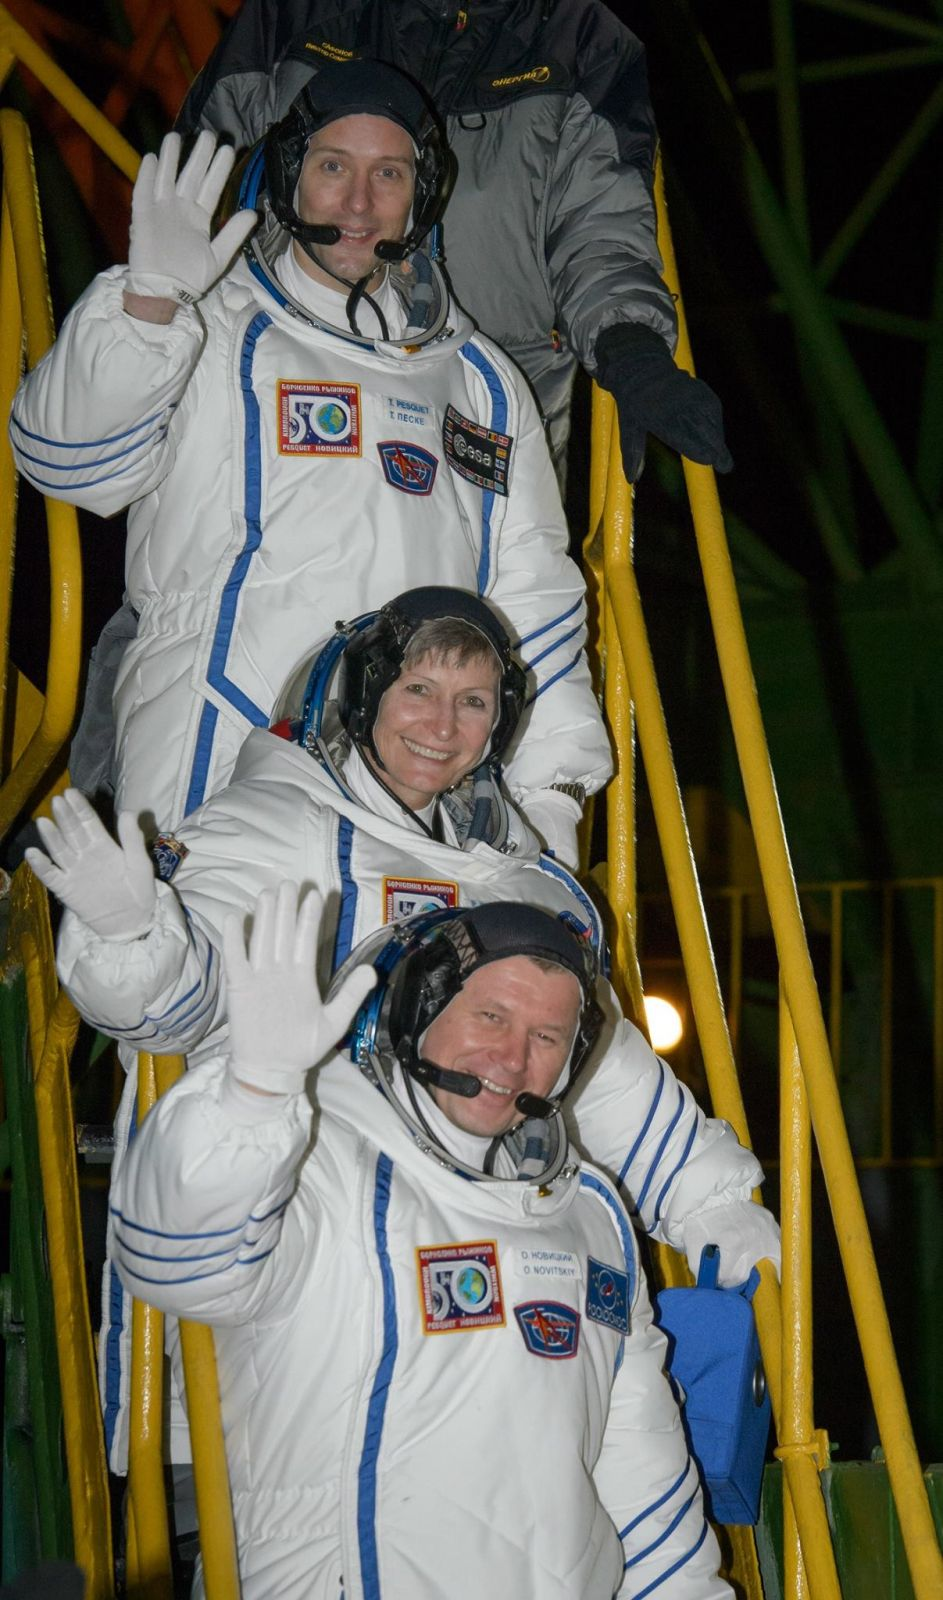 Soyuz MS-03 crew. Photo Credit: Bill Ingalls / NASA